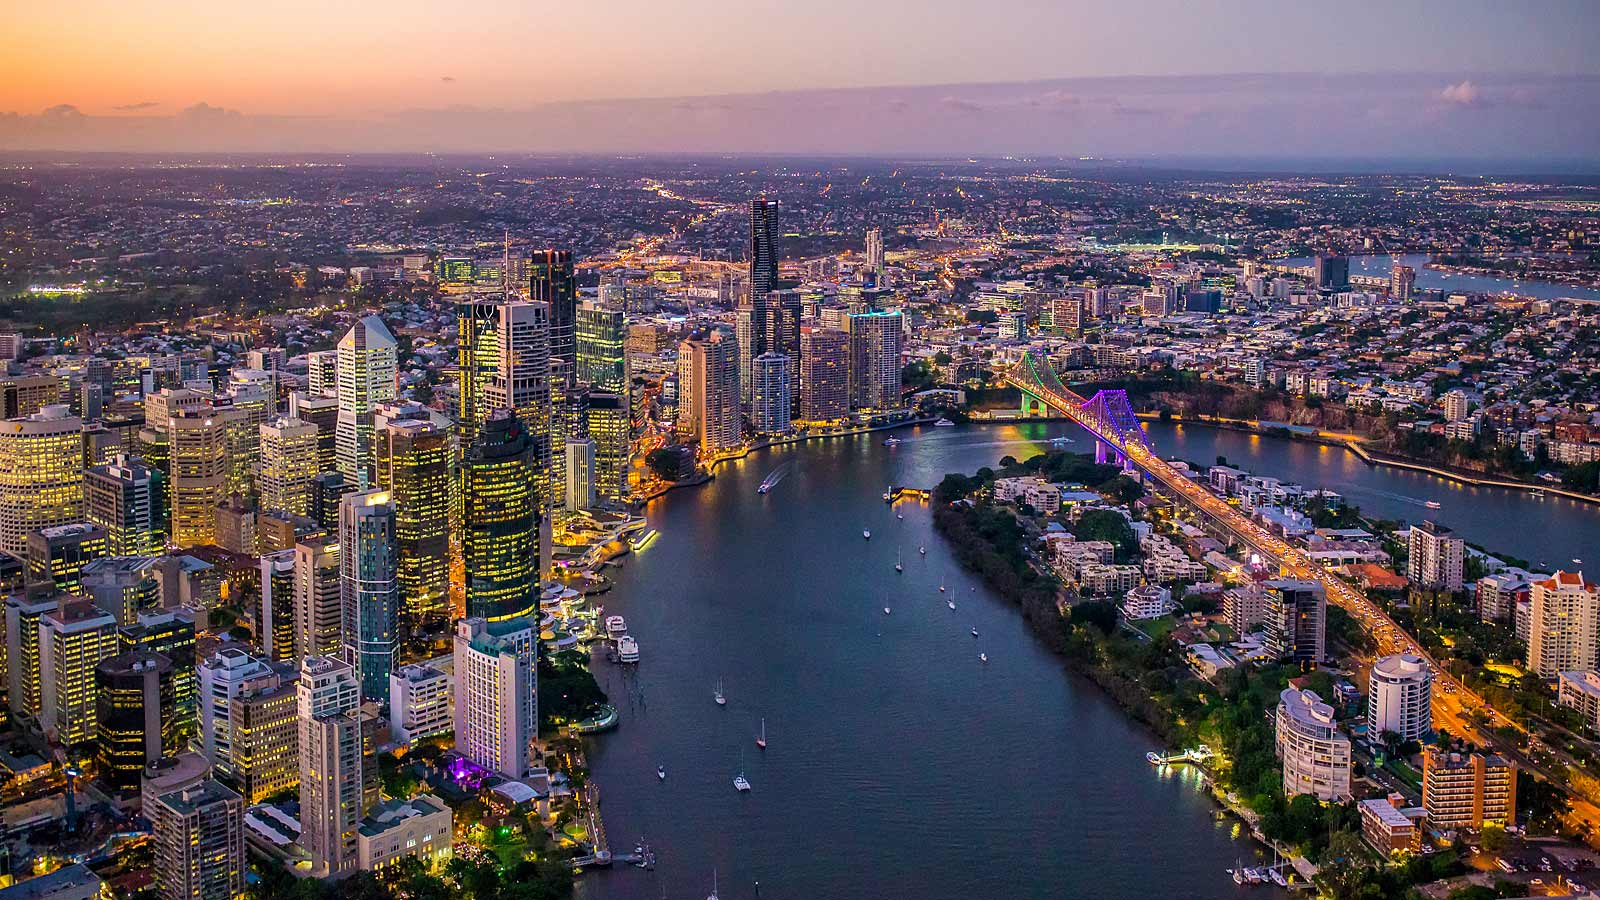 Data shows promising economic recovery in Brisbane